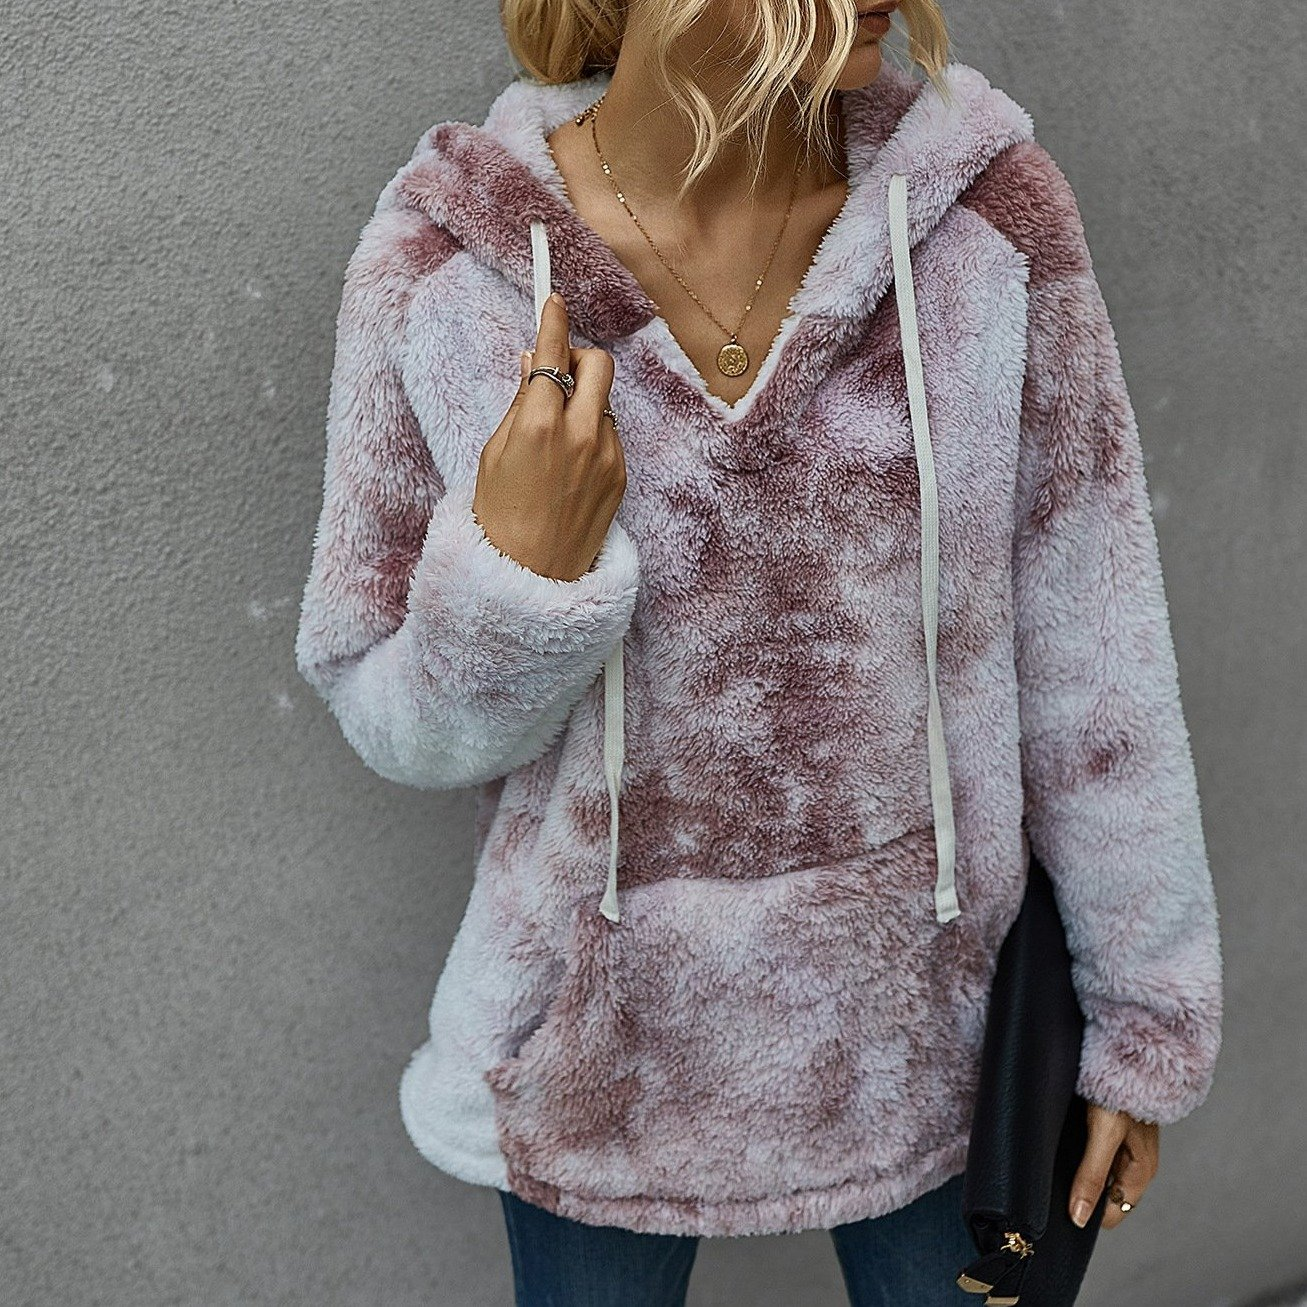 Tie dye fuzzy hooded sweater winter warm pullover chunky sweater